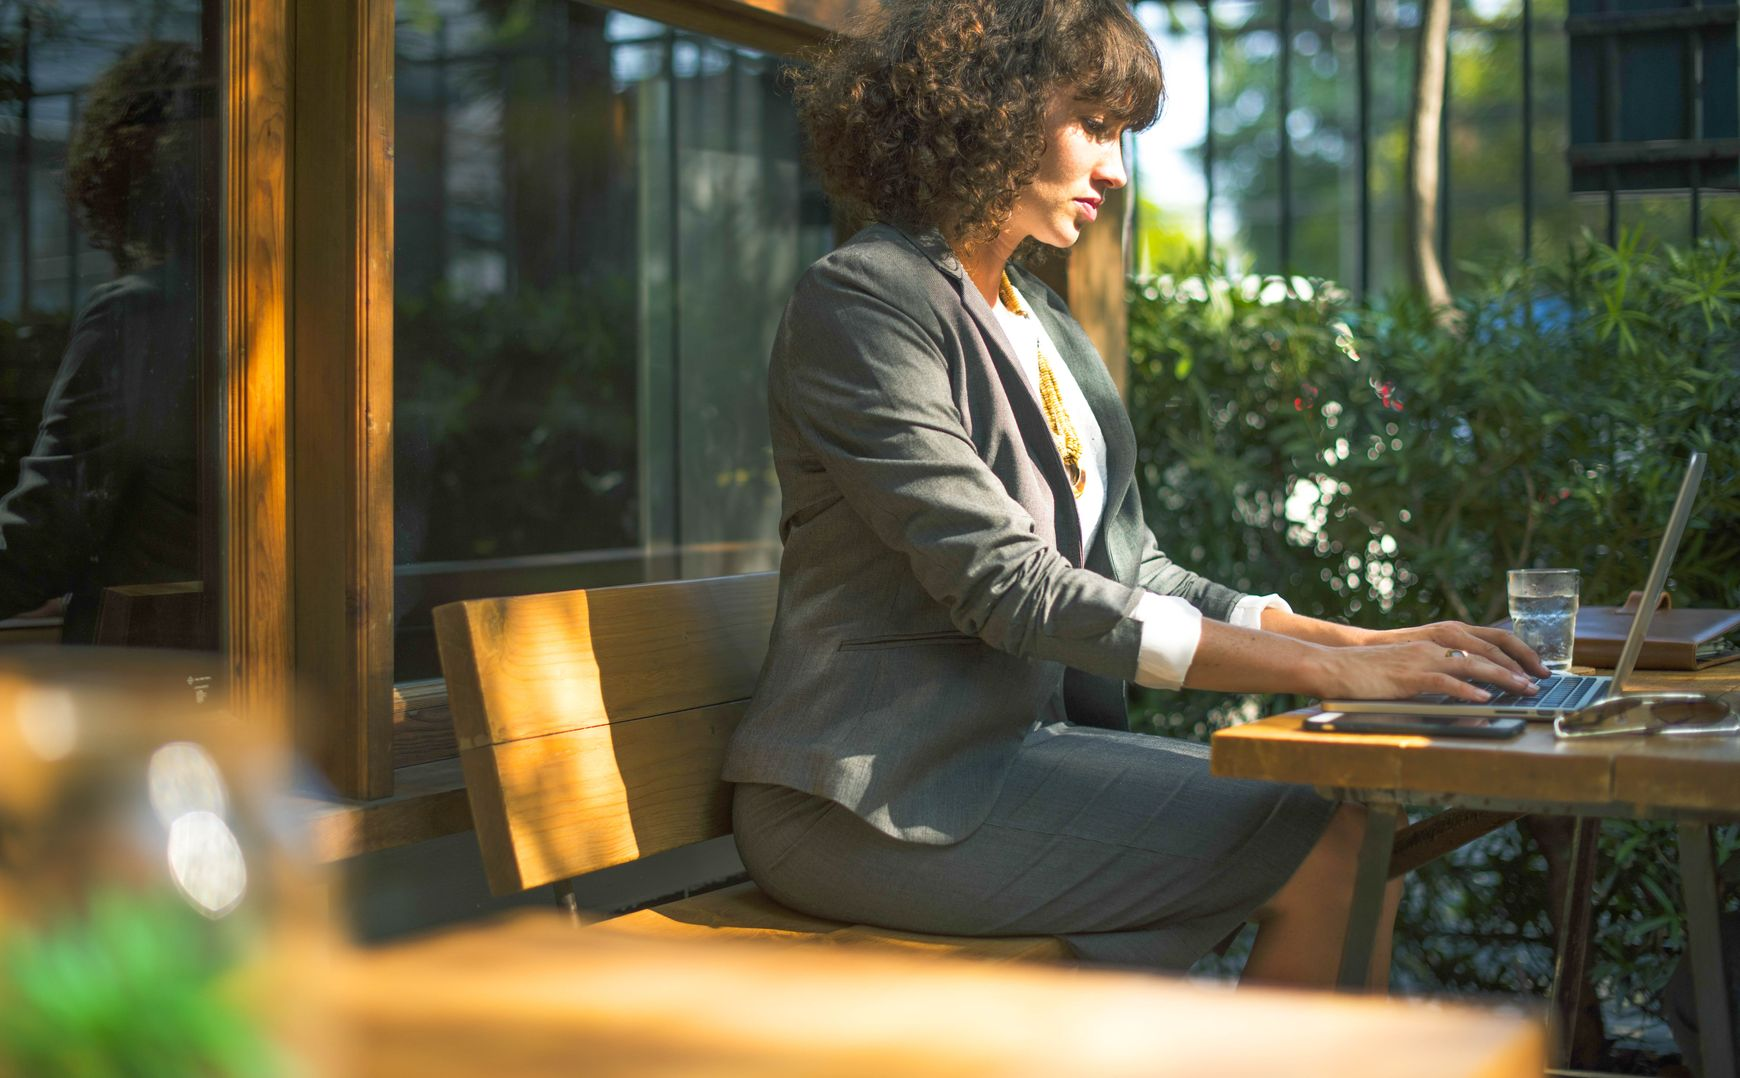 Woman in business attire sitting on bench while typing on her laptop